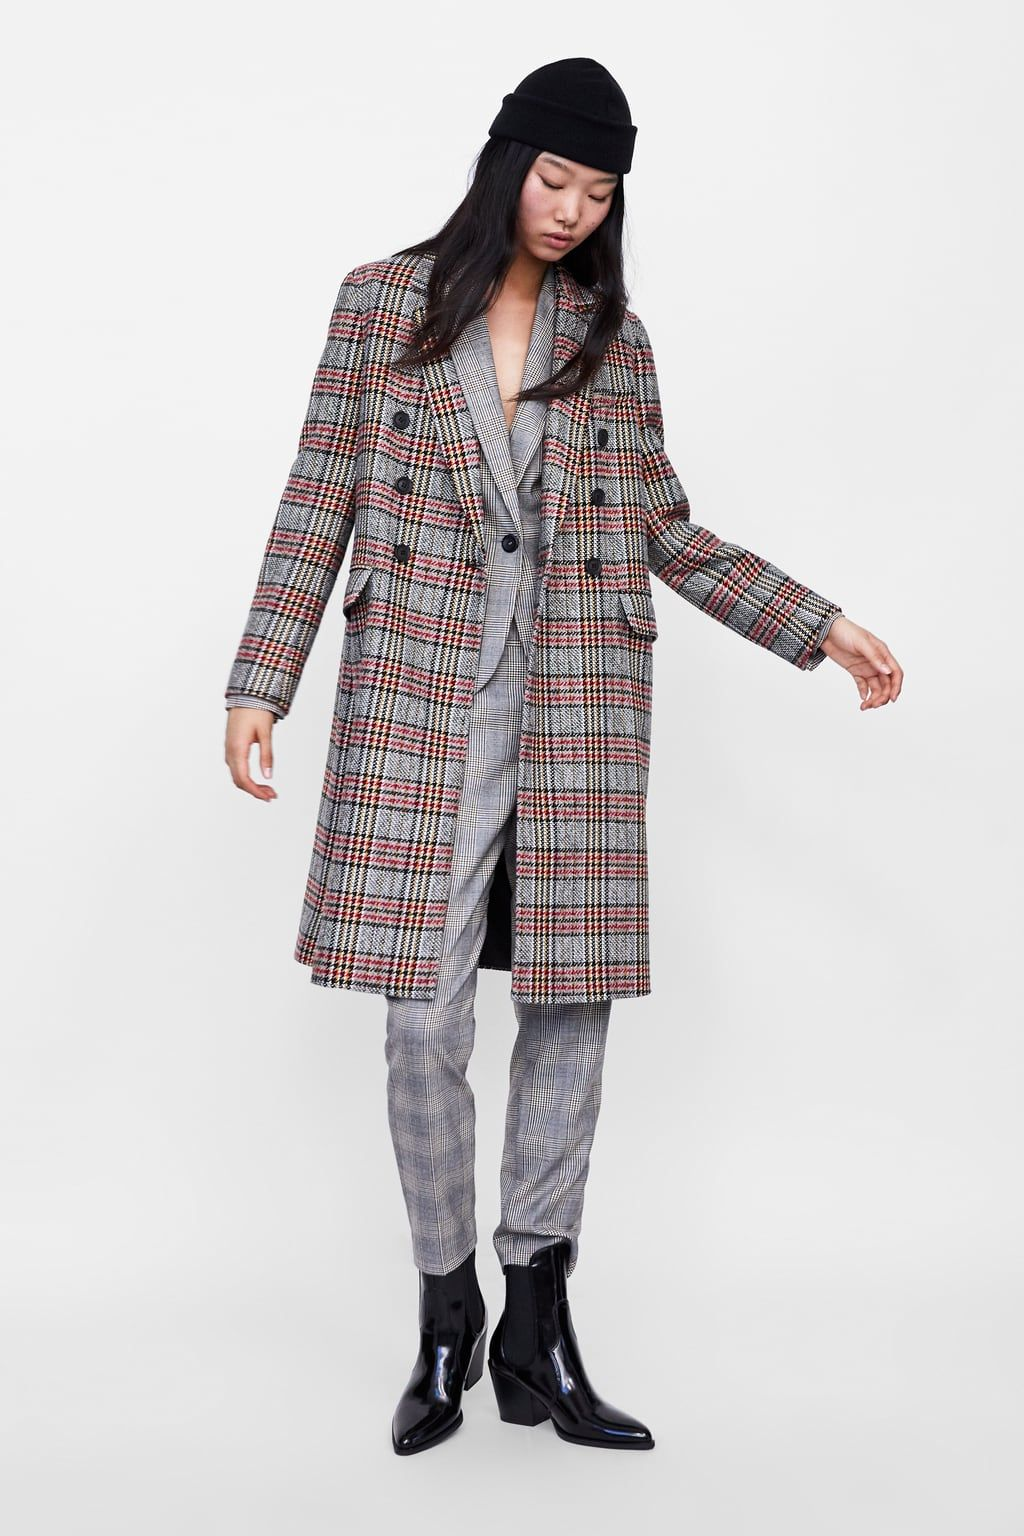 Cuadros 2019Plaid Abrigo CoatZara Cruzado In Fashion W2I9HEDY